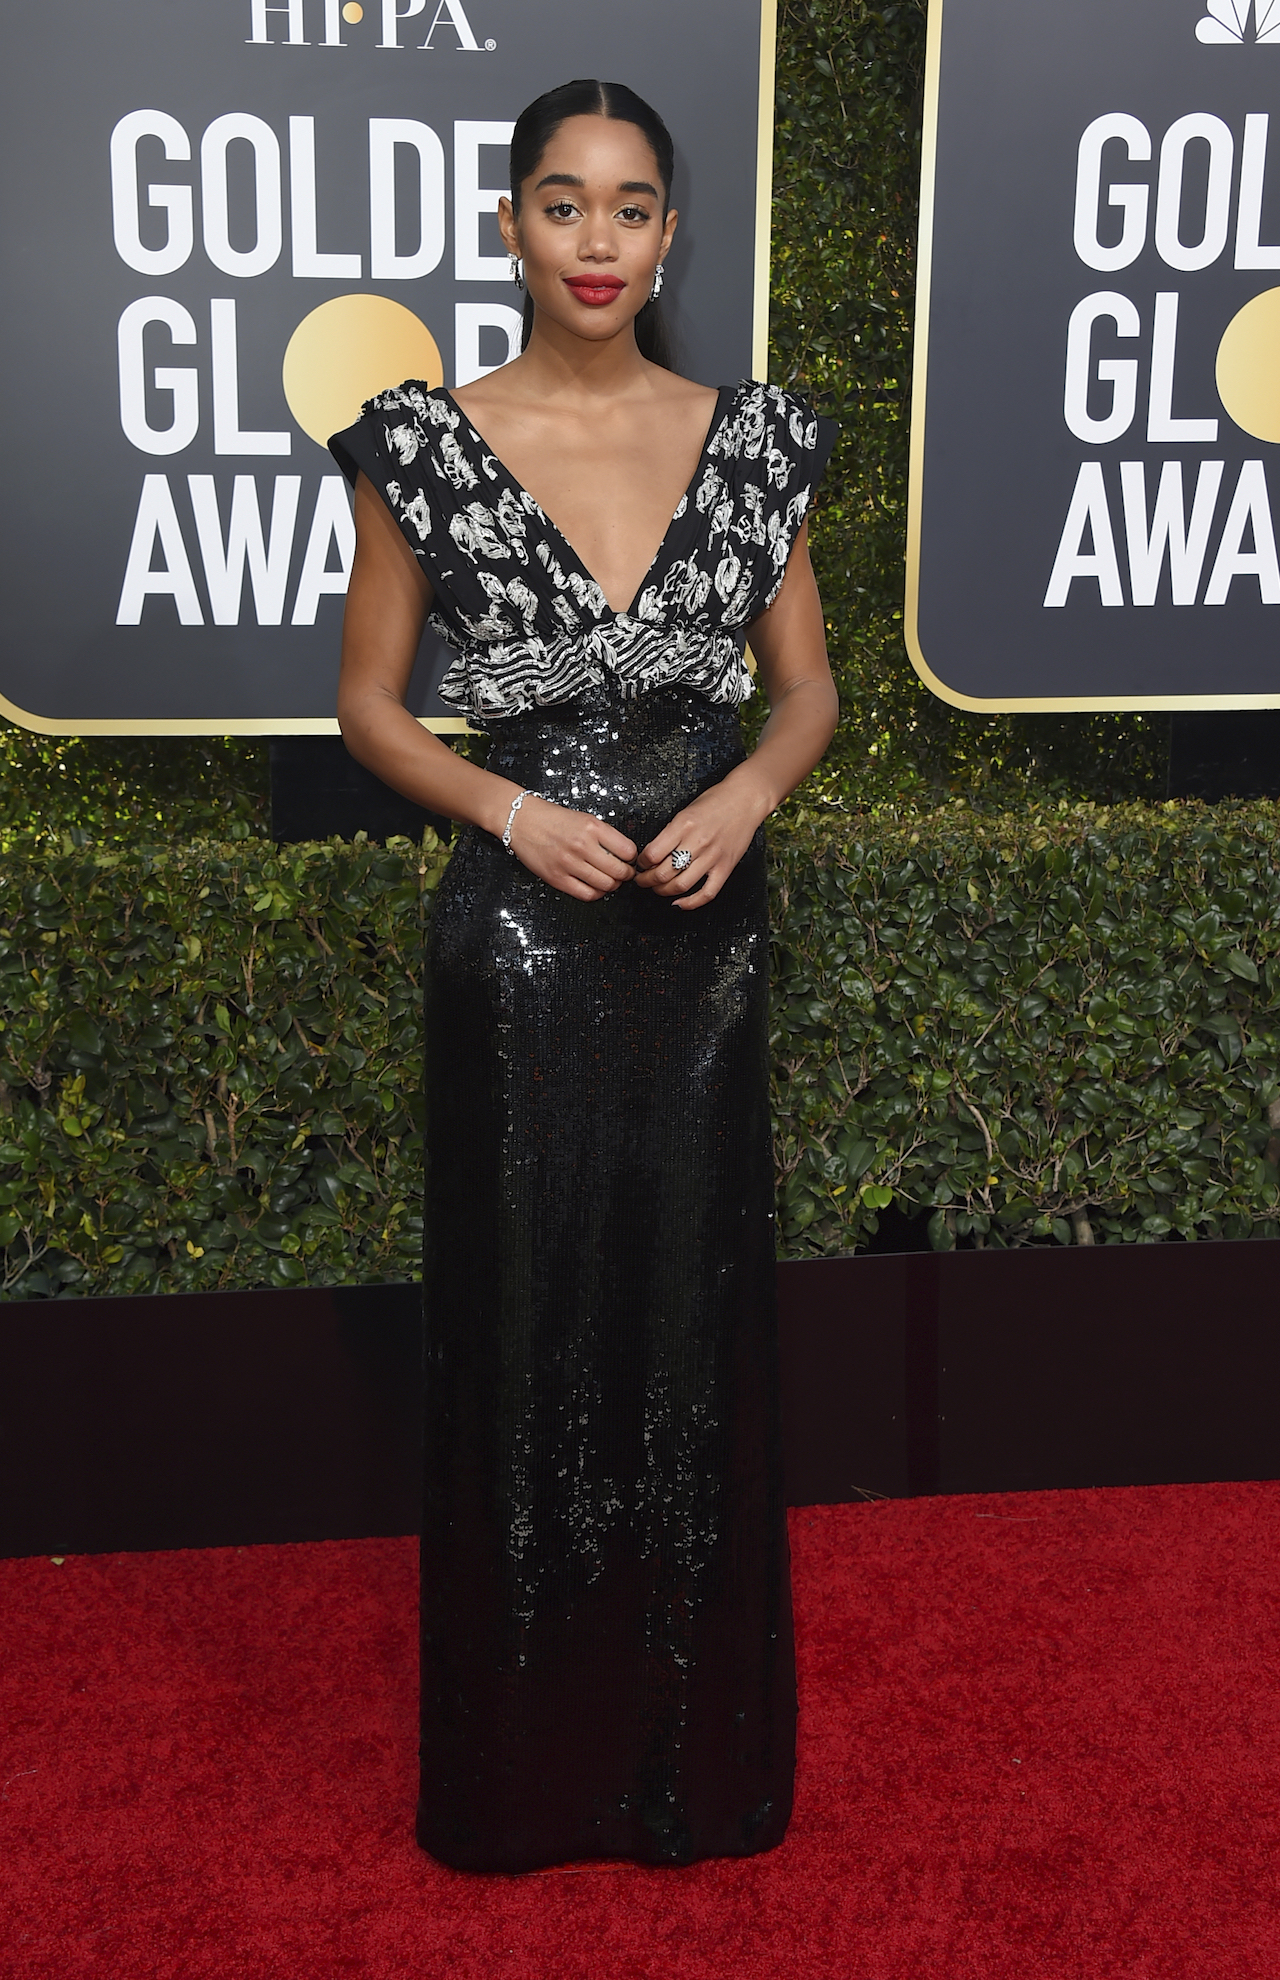 <div class='meta'><div class='origin-logo' data-origin='AP'></div><span class='caption-text' data-credit='Jordan Strauss/Invision/AP'>Laura Harrier arrives at the 76th annual Golden Globe Awards at the Beverly Hilton Hotel on Sunday, Jan. 6, 2019, in Beverly Hills, Calif.</span></div>